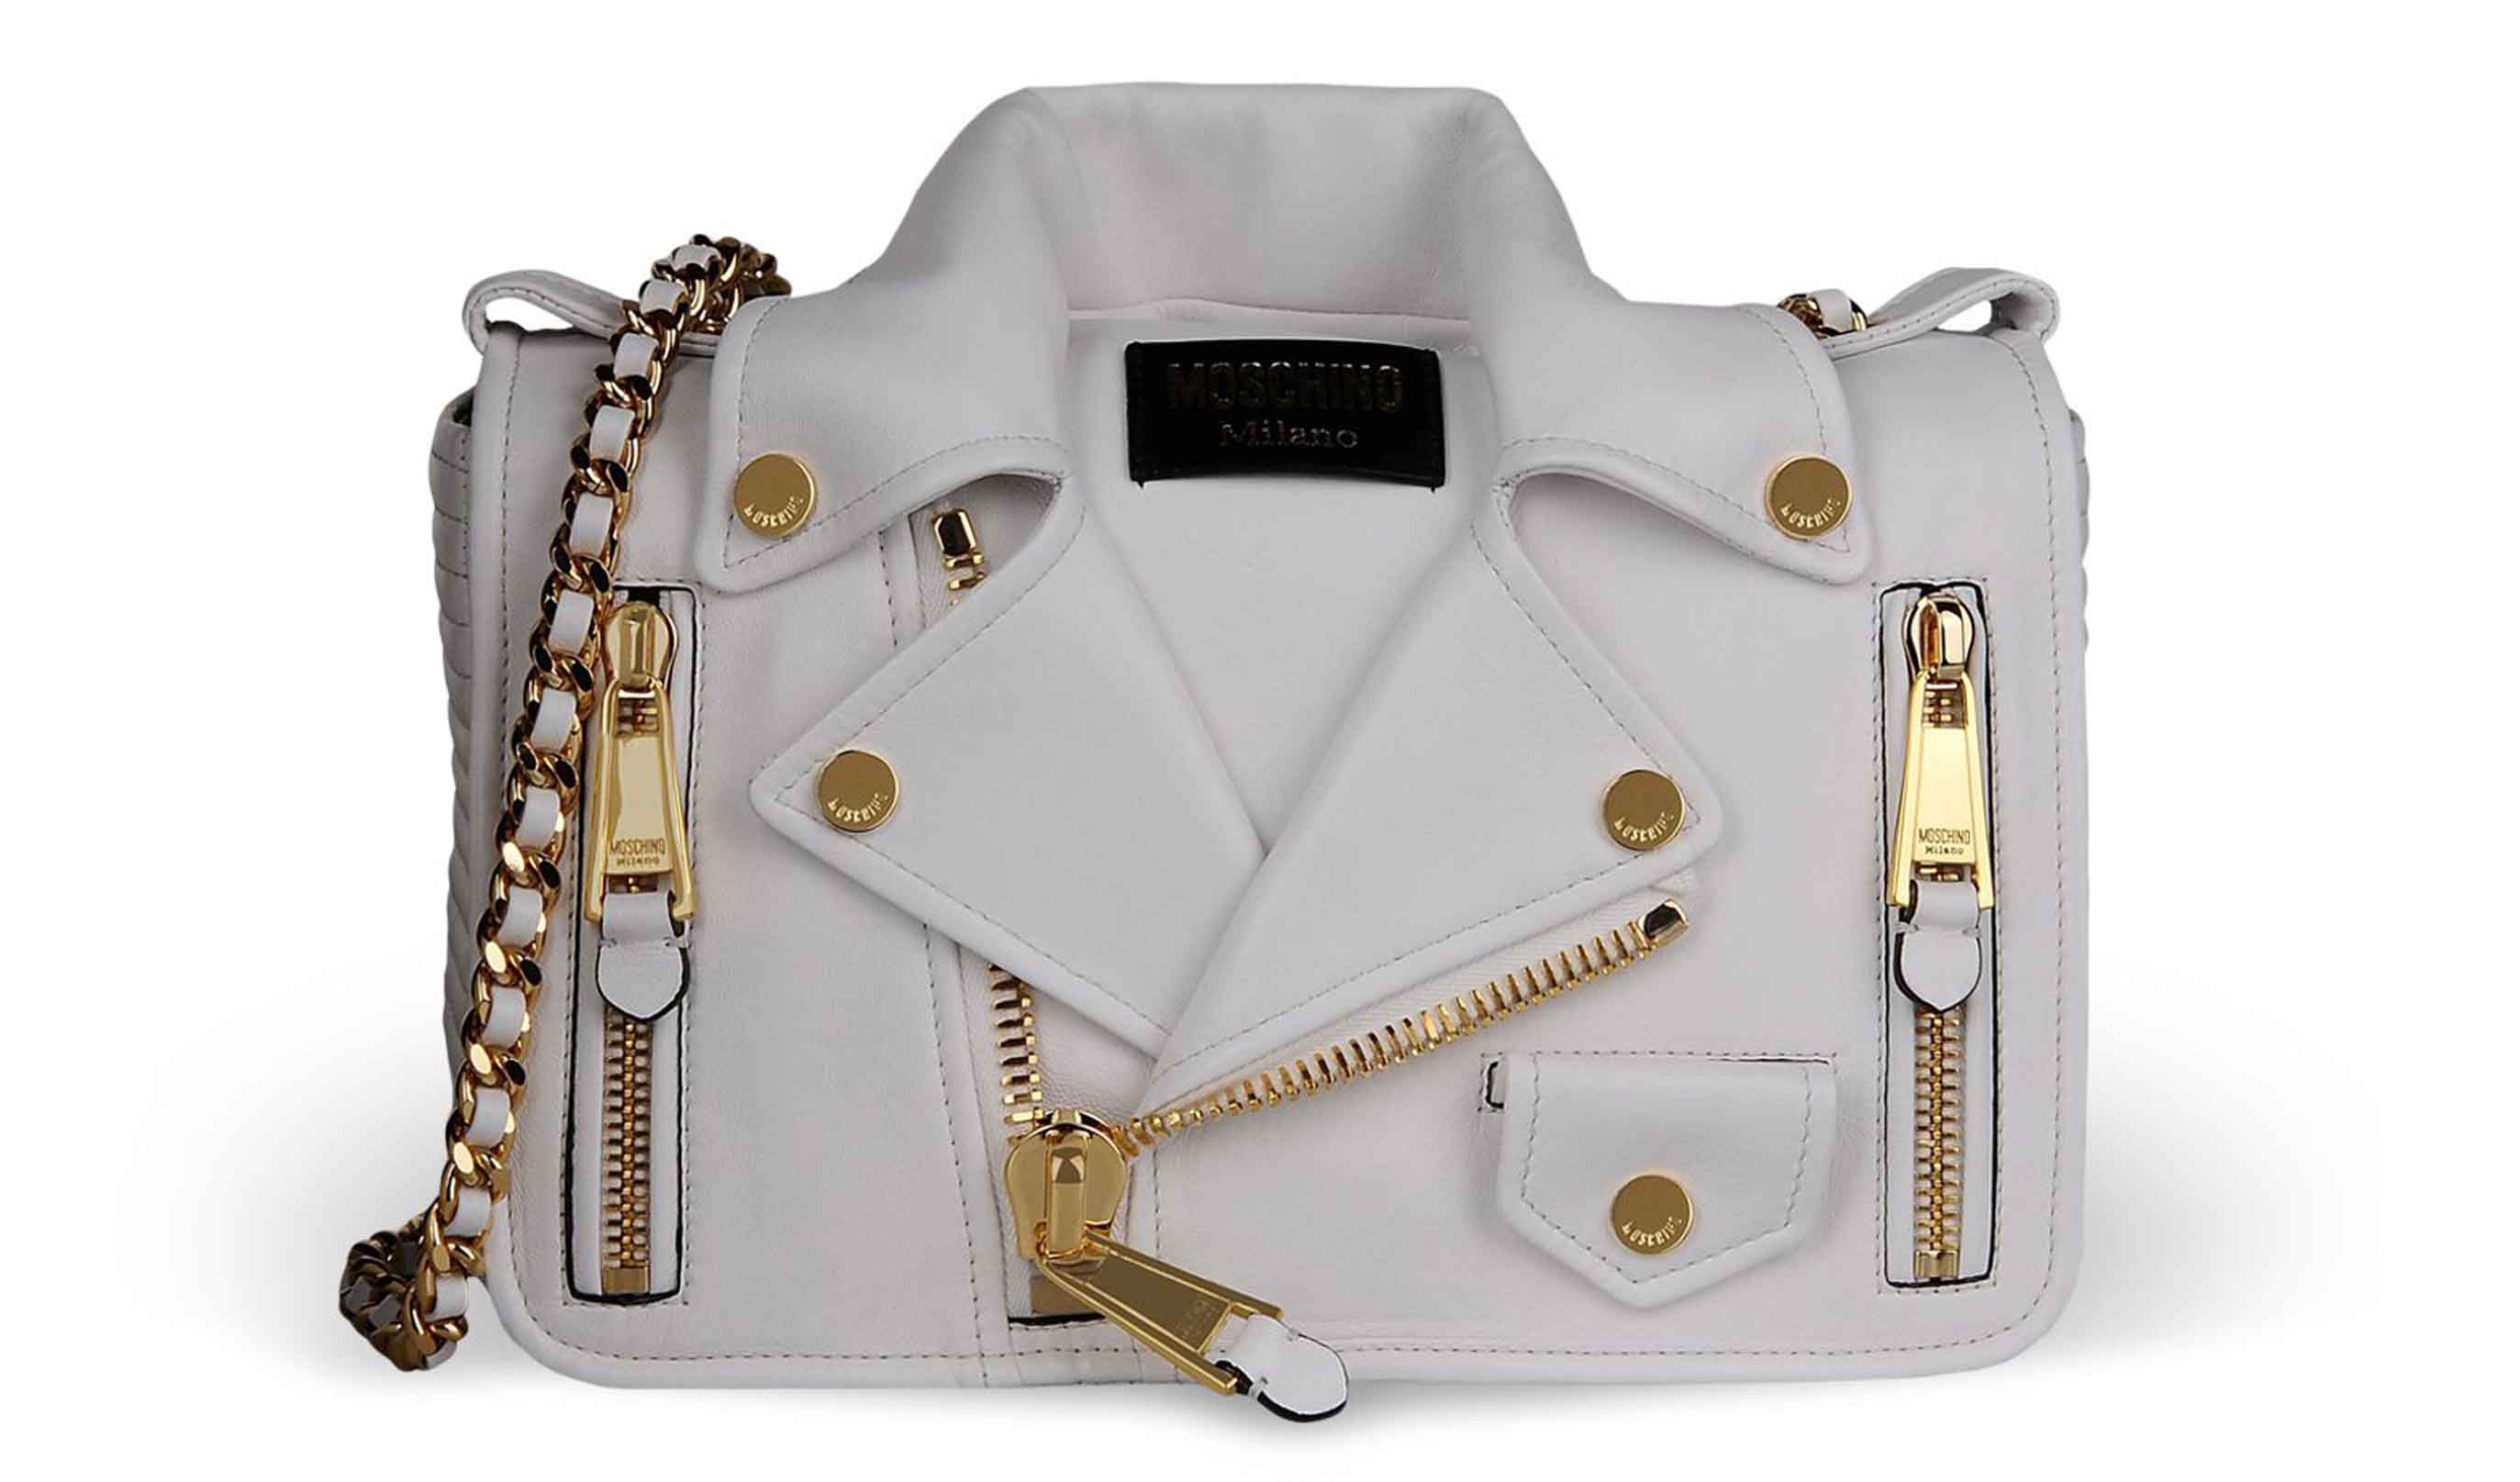 Bag at You - Fashion Blog - Moschino iconic shoulder bag